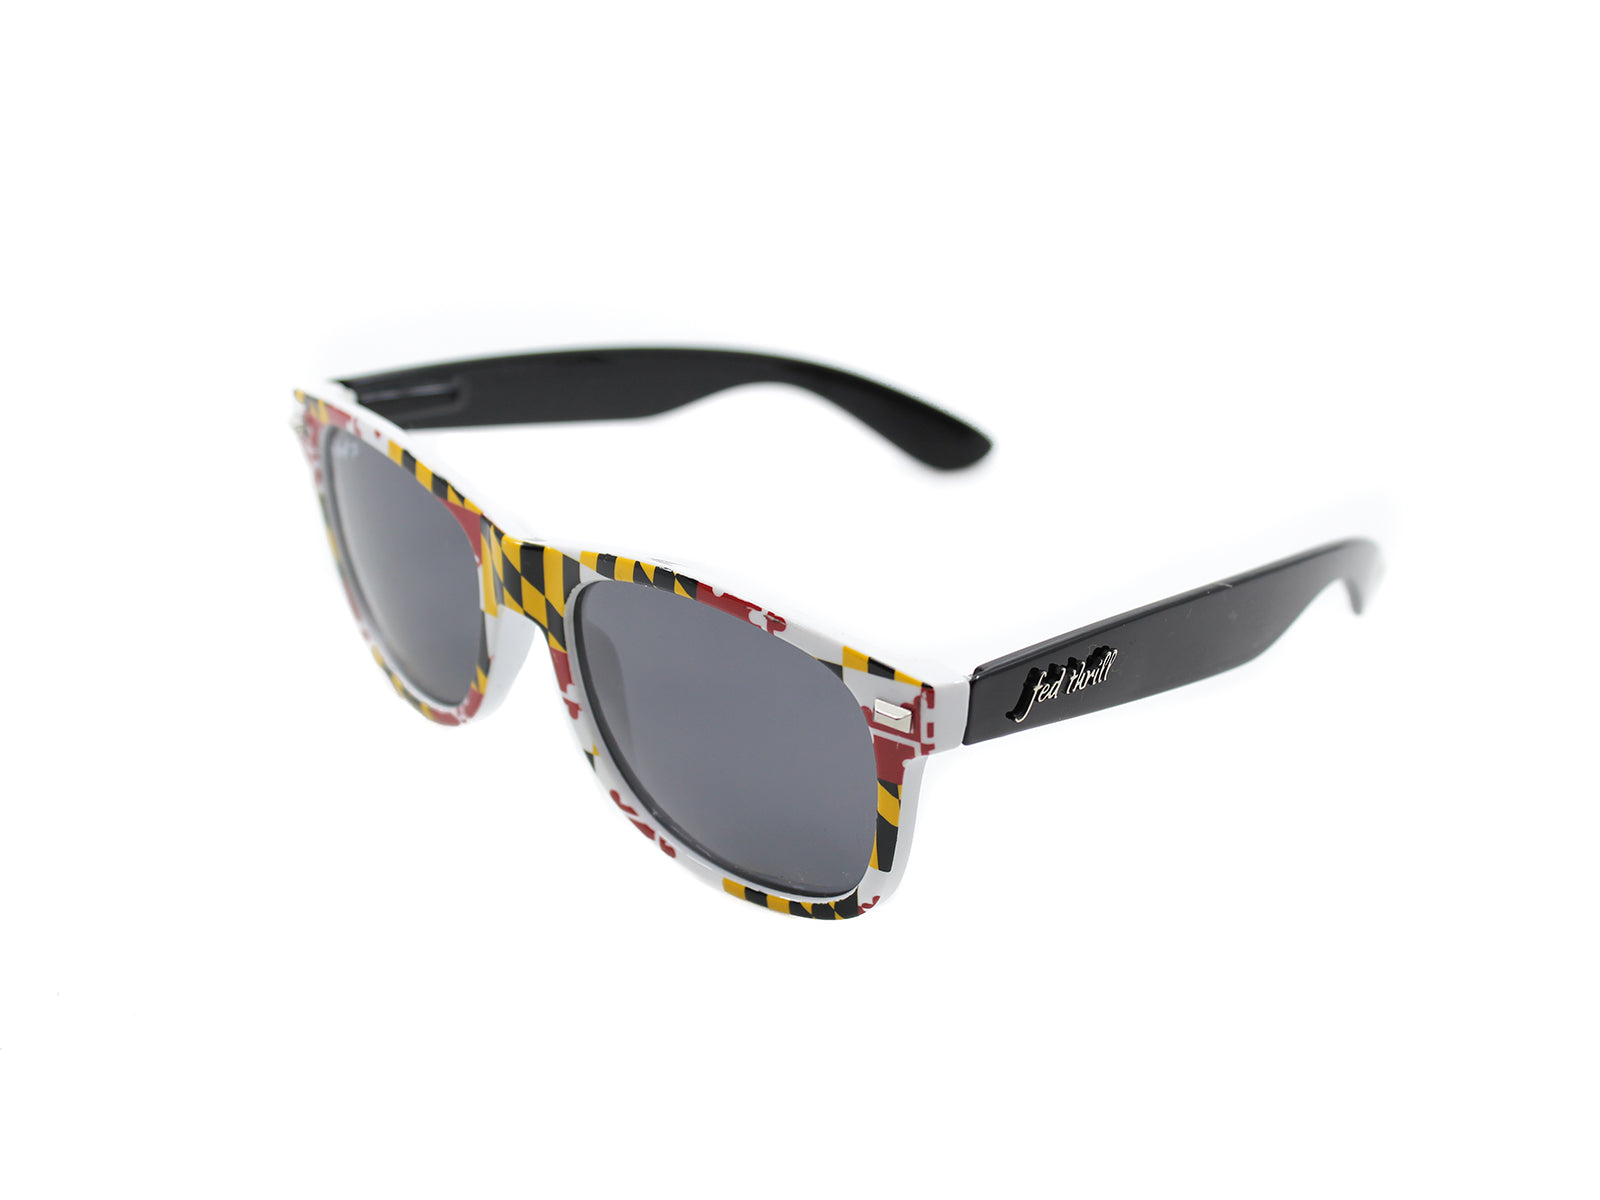 Fultons - Free States: Glossy Maryland Flag / Glossy Black / Smoke Polarized